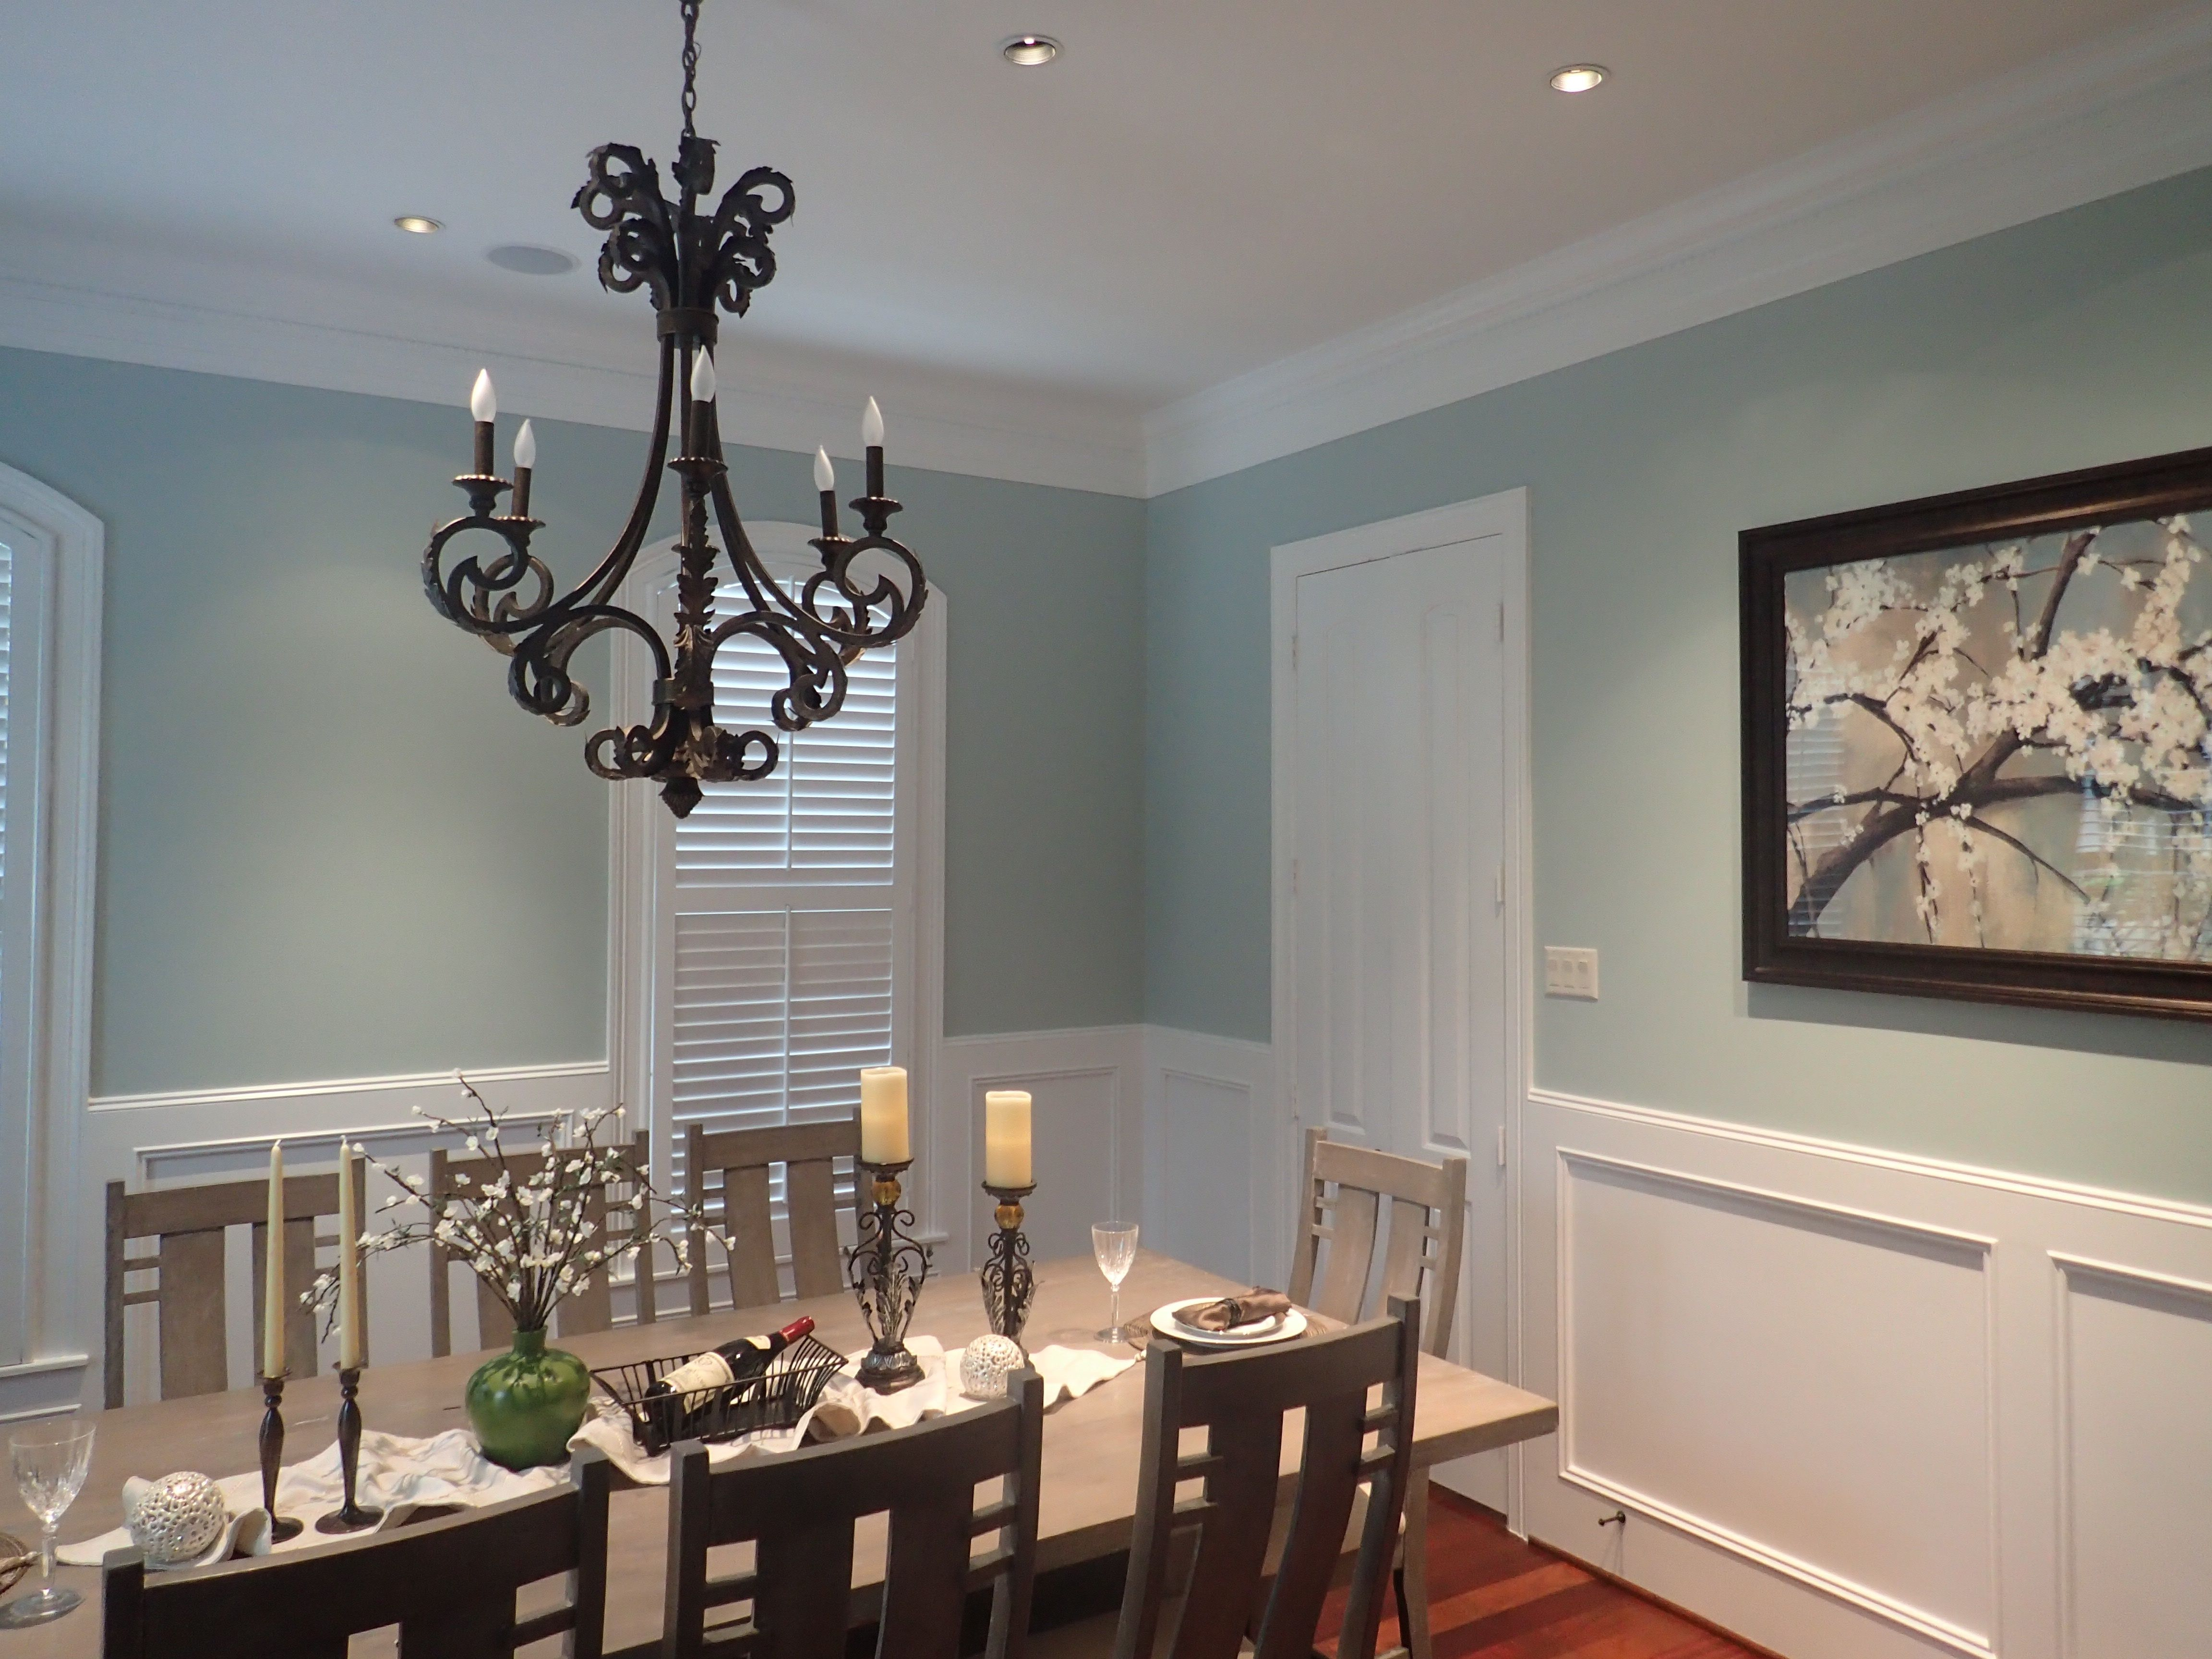 Dining room sherwin williams copen blue for the home for Best color to paint a dining room